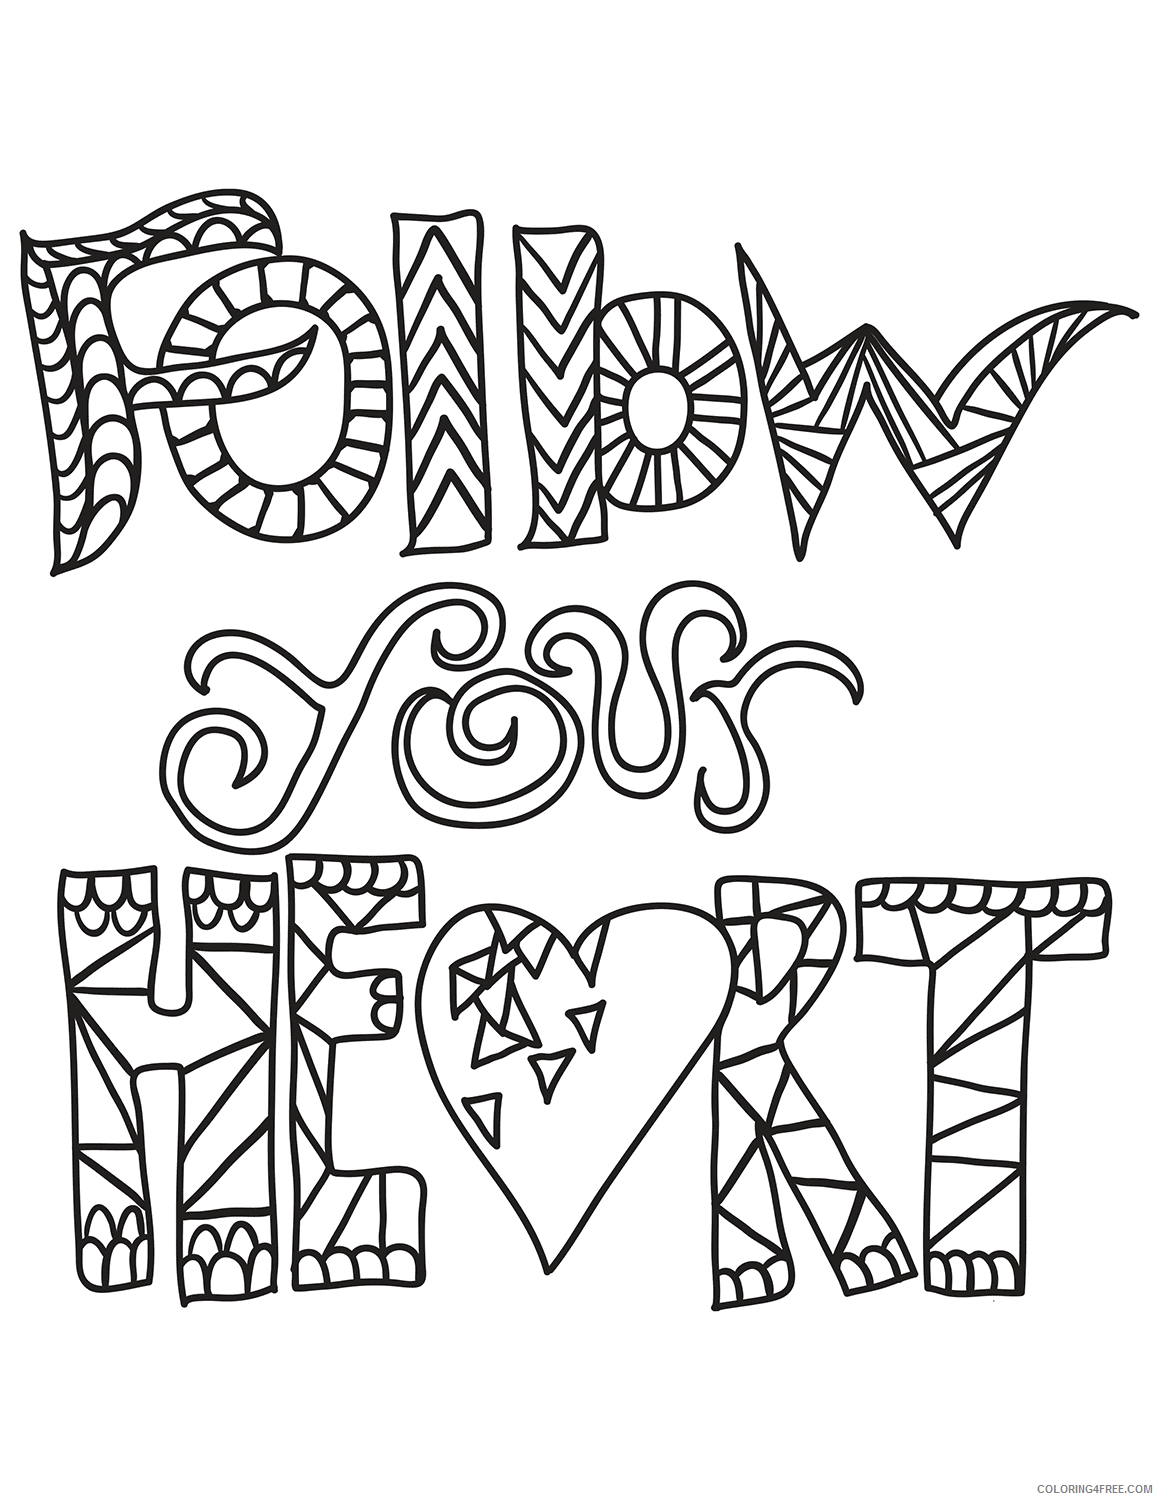 Heart Coloring Pages follow your heart Printable 2021 3150 Coloring4free